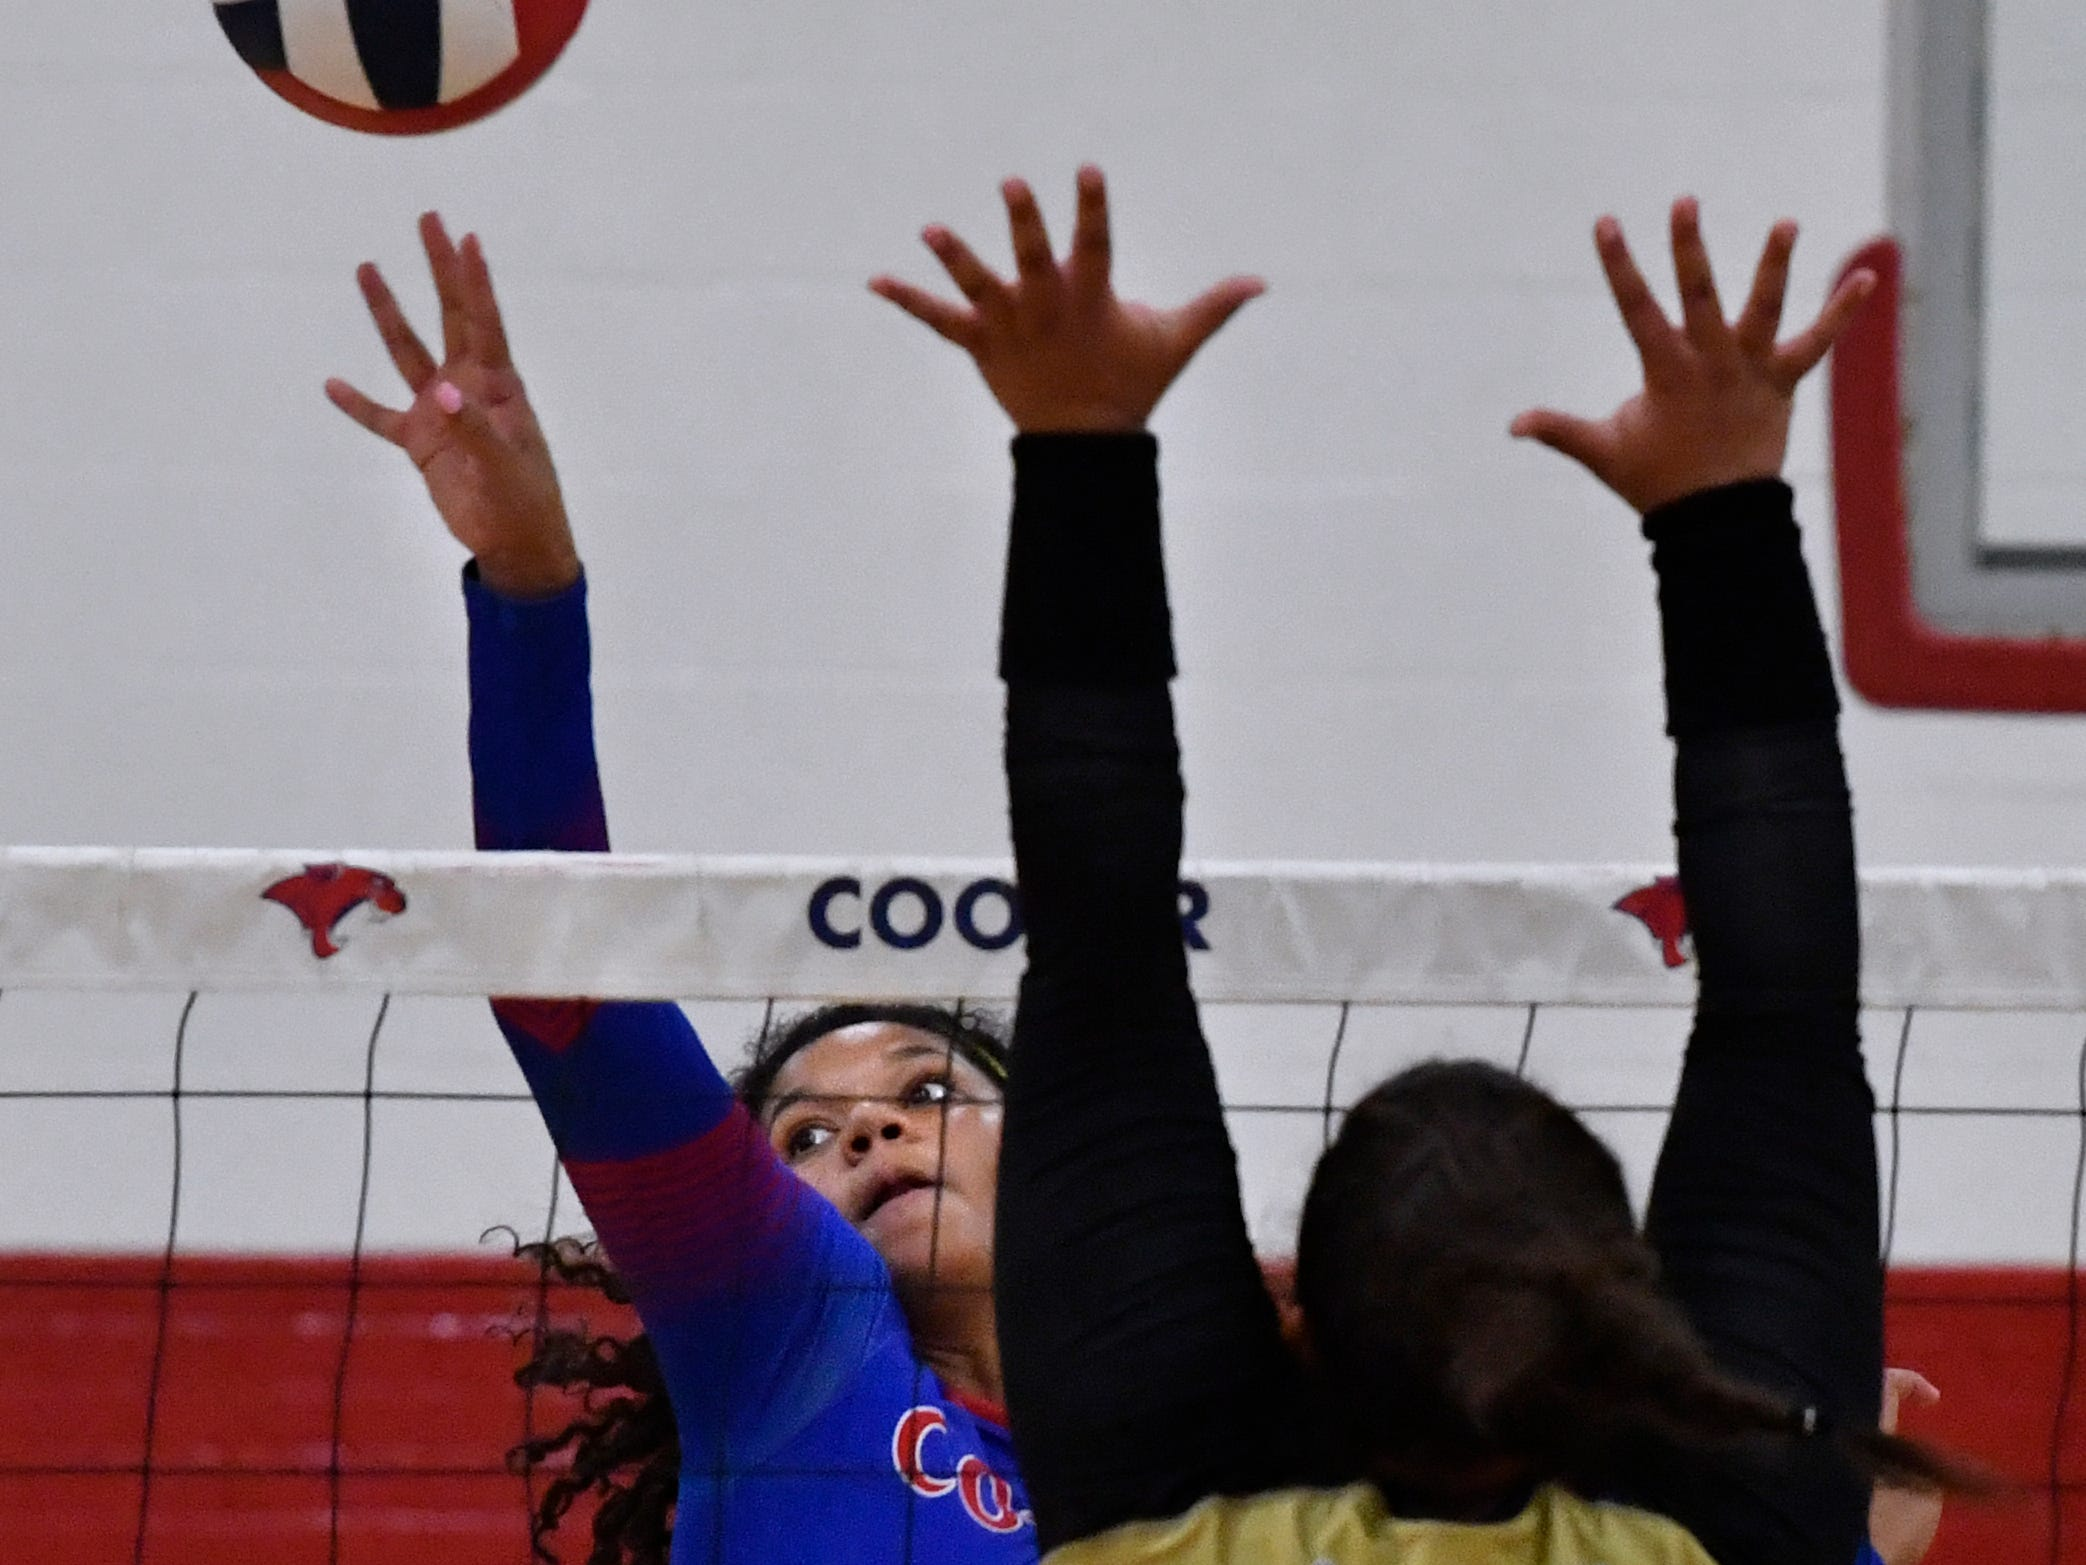 Cooper High's Diamond Brown spikes to ball toward Abilene High's Sydnee Killam. Abilene High won the crosstown volleyball game Tuesday August 7, 2018 against Cooper High in the best-of-five match, 25-21, 16-25, 25-20, 17-25, 15-7.